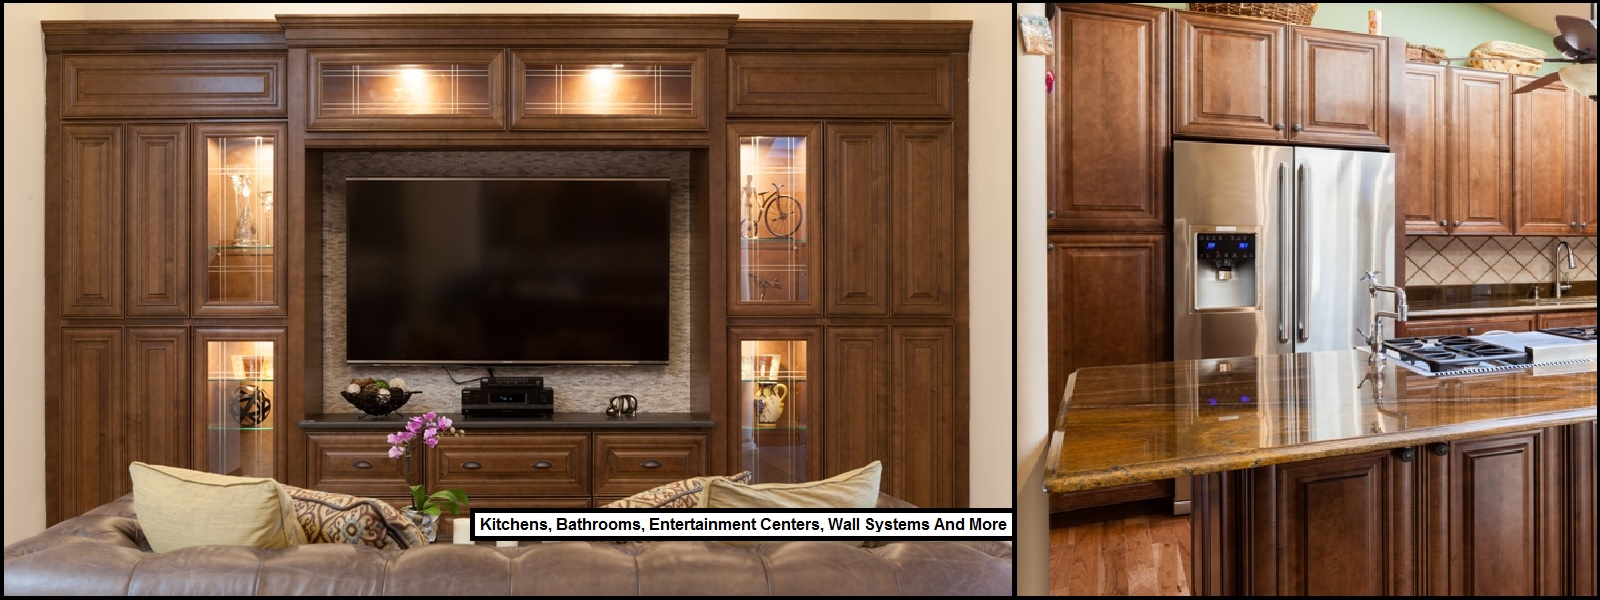 Scottsdale Kitchens Bathrooms Entertainment Centers Wall Systems